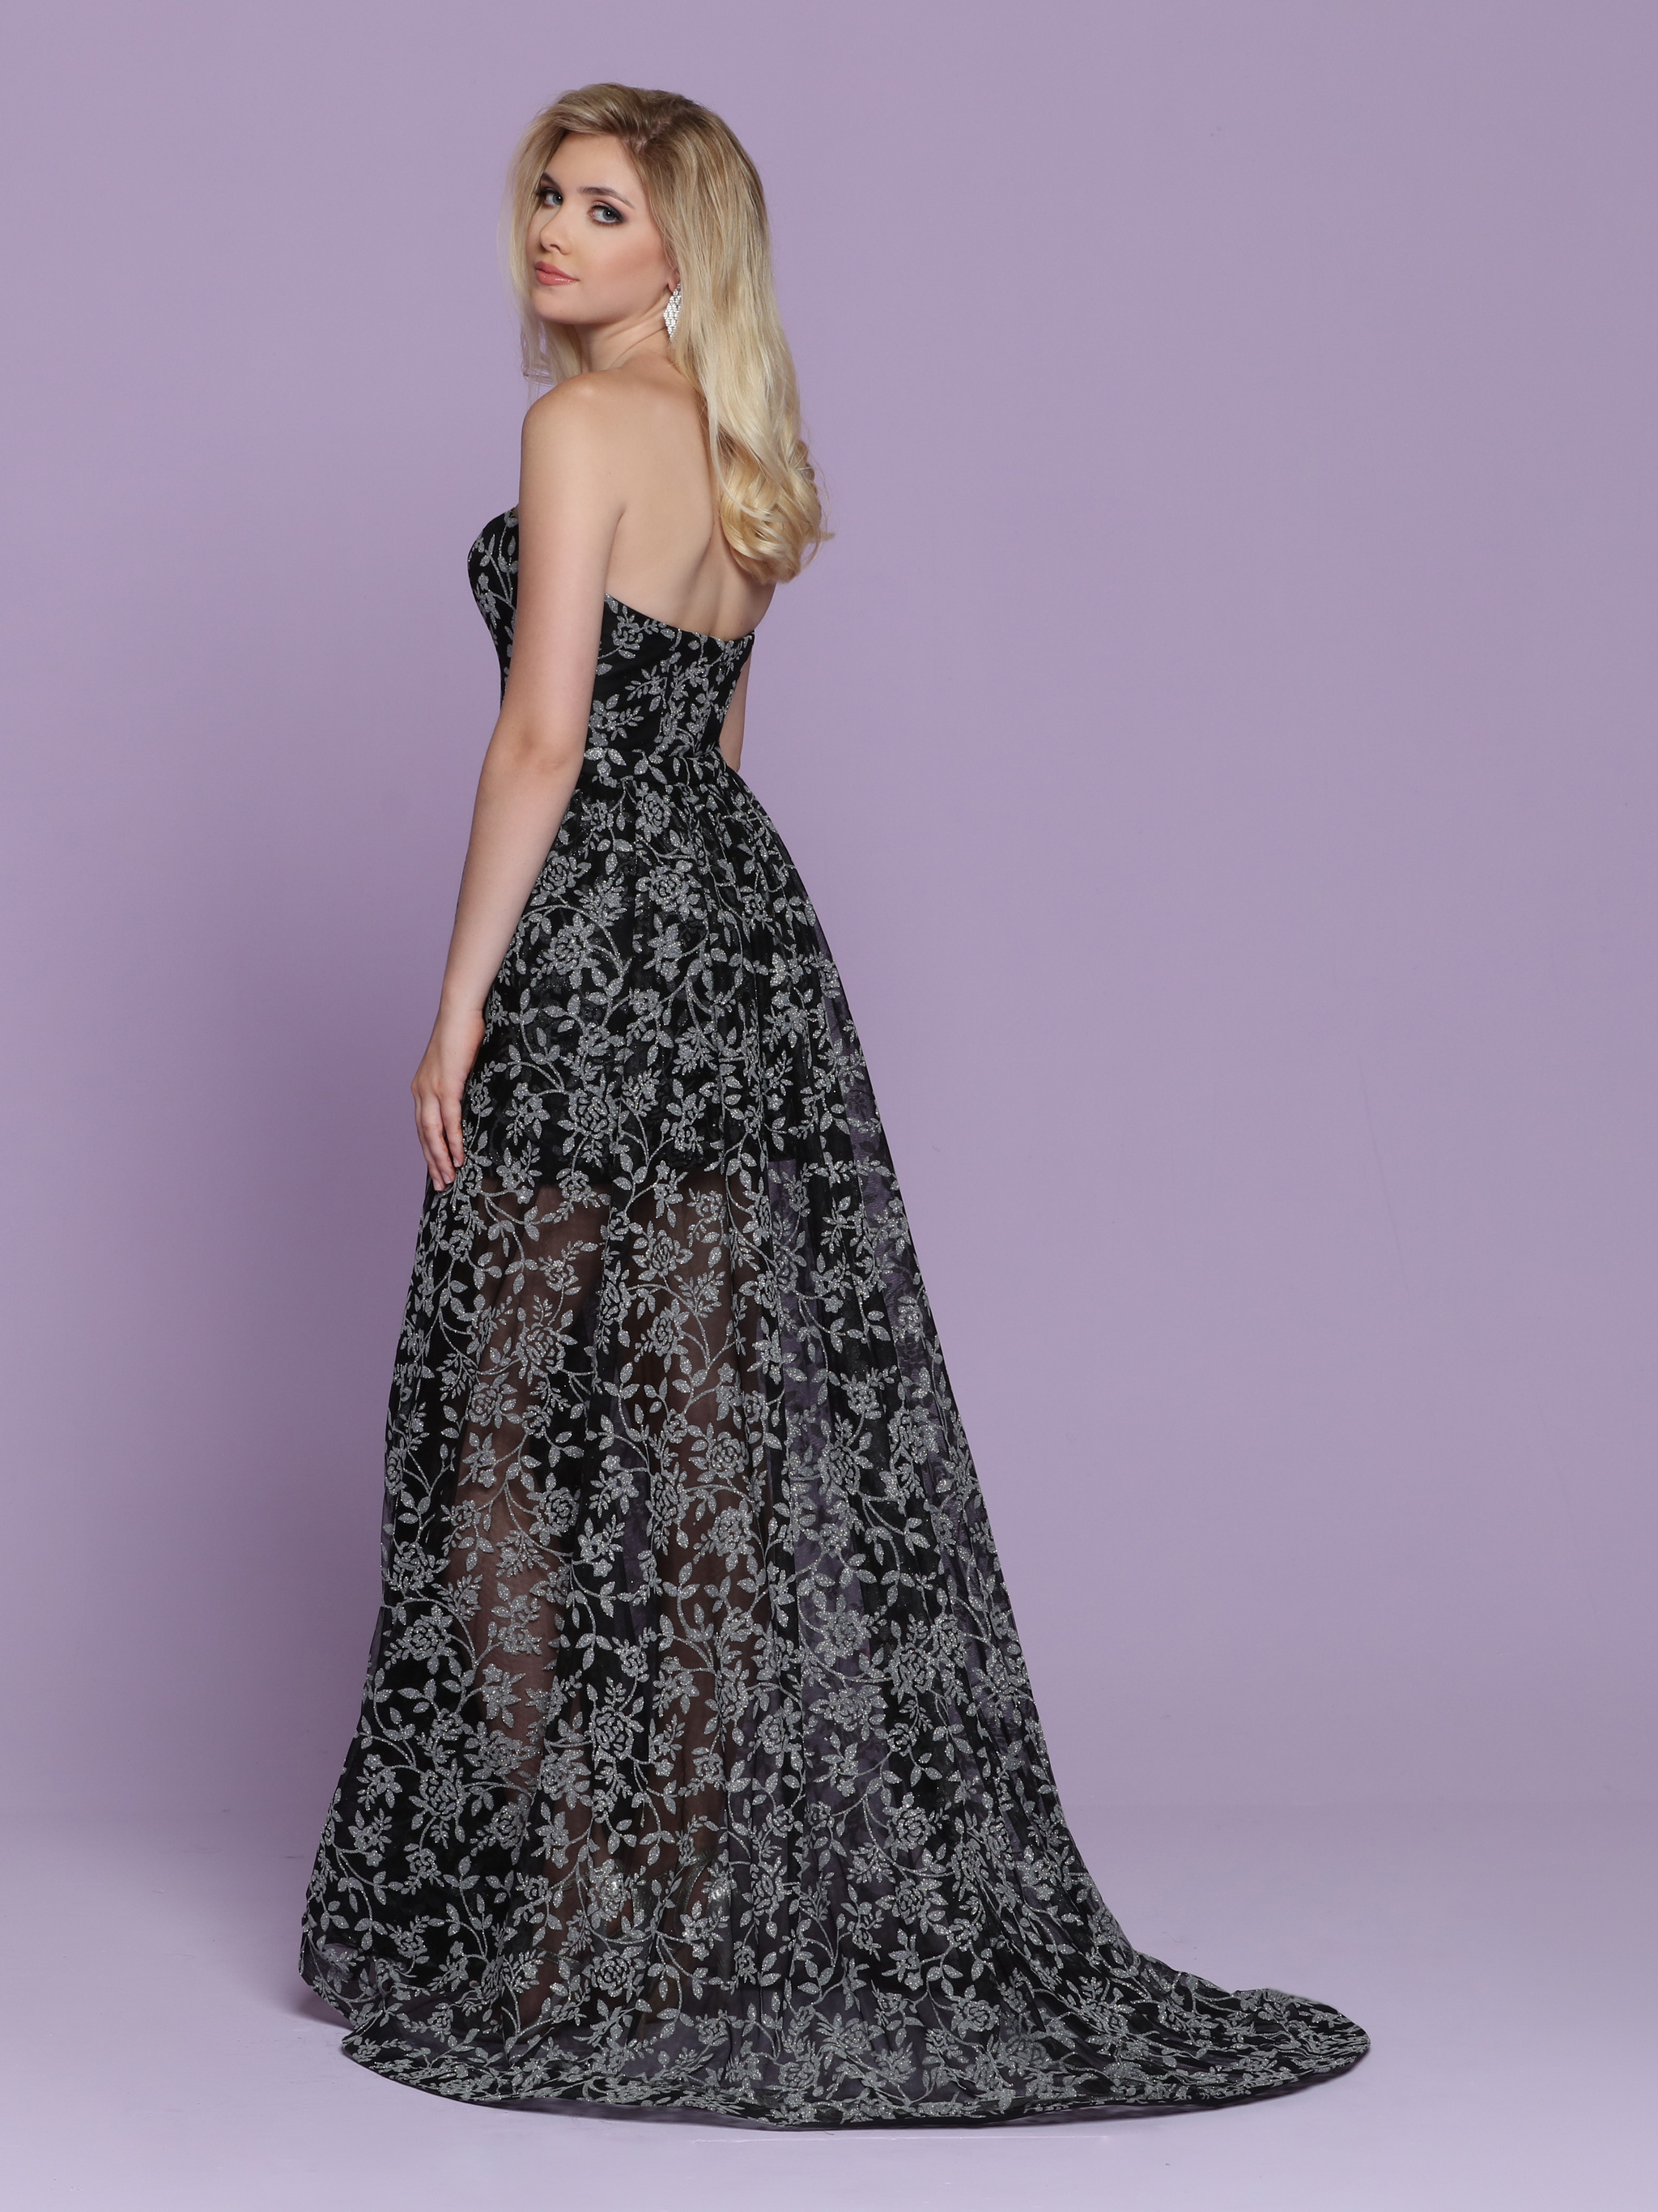 Image showing back view of style #72077